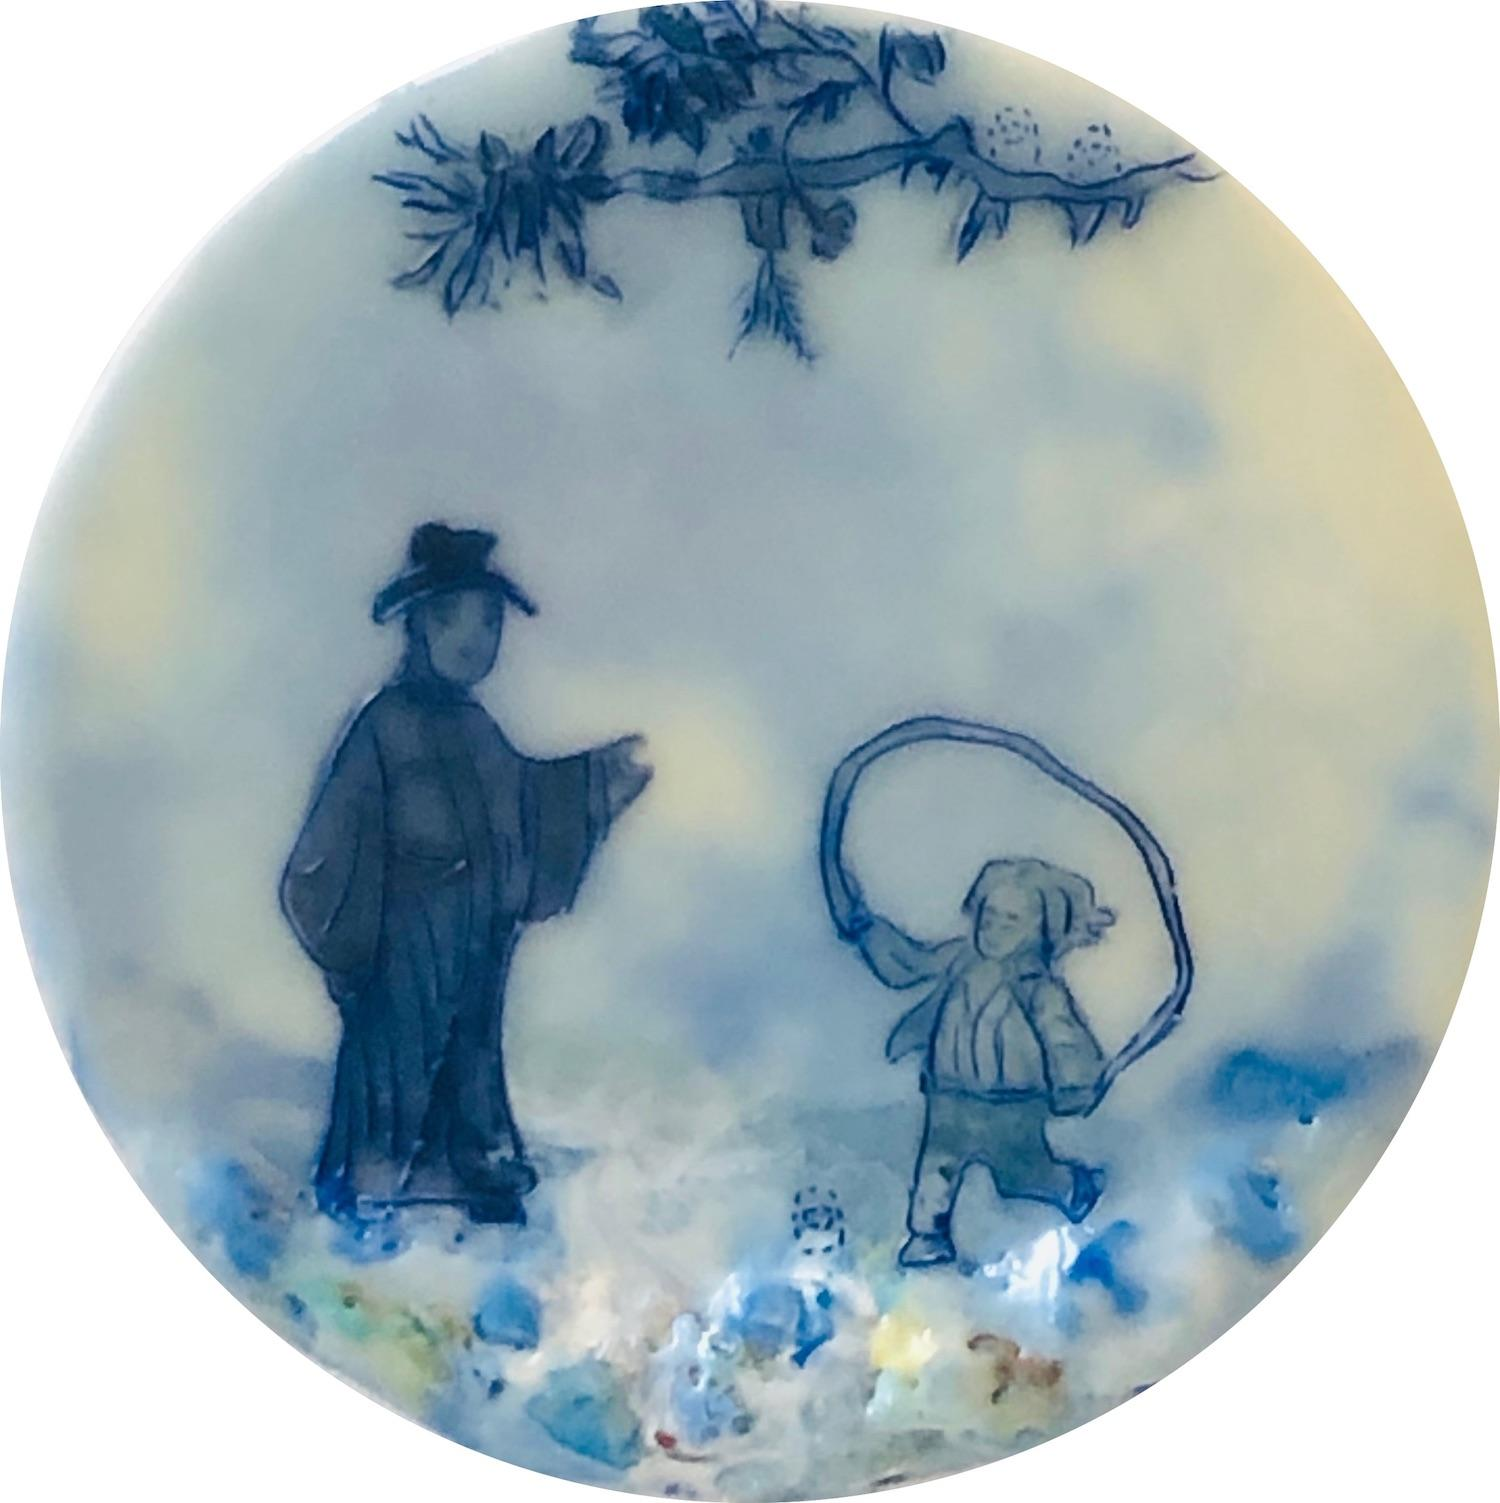 Jump In, Circular Encaustic Painting of a Man and Child in Blue, Ivory and White